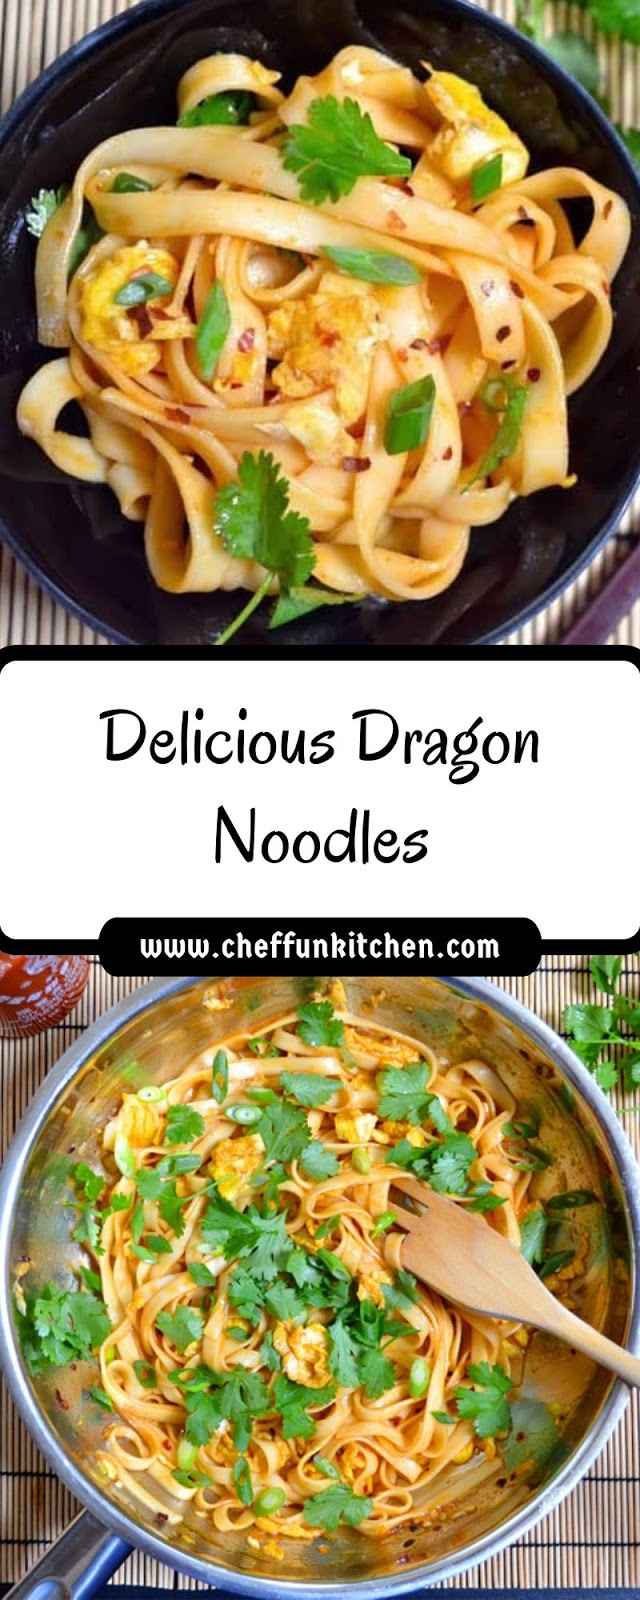 Delicious Dragon Noodles